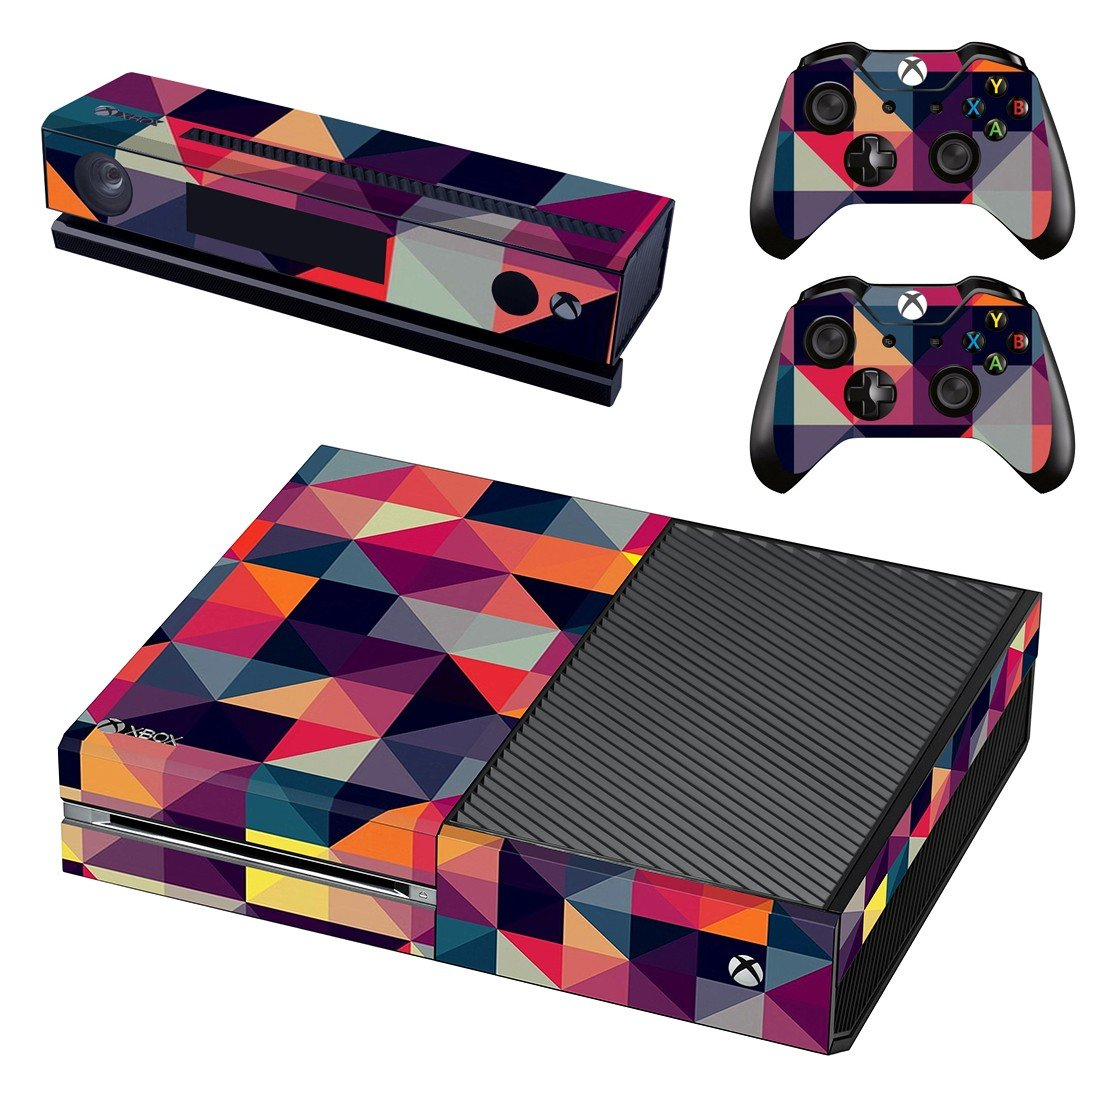 Colorfull Prism shape skin decal for Xbox one console and controllers